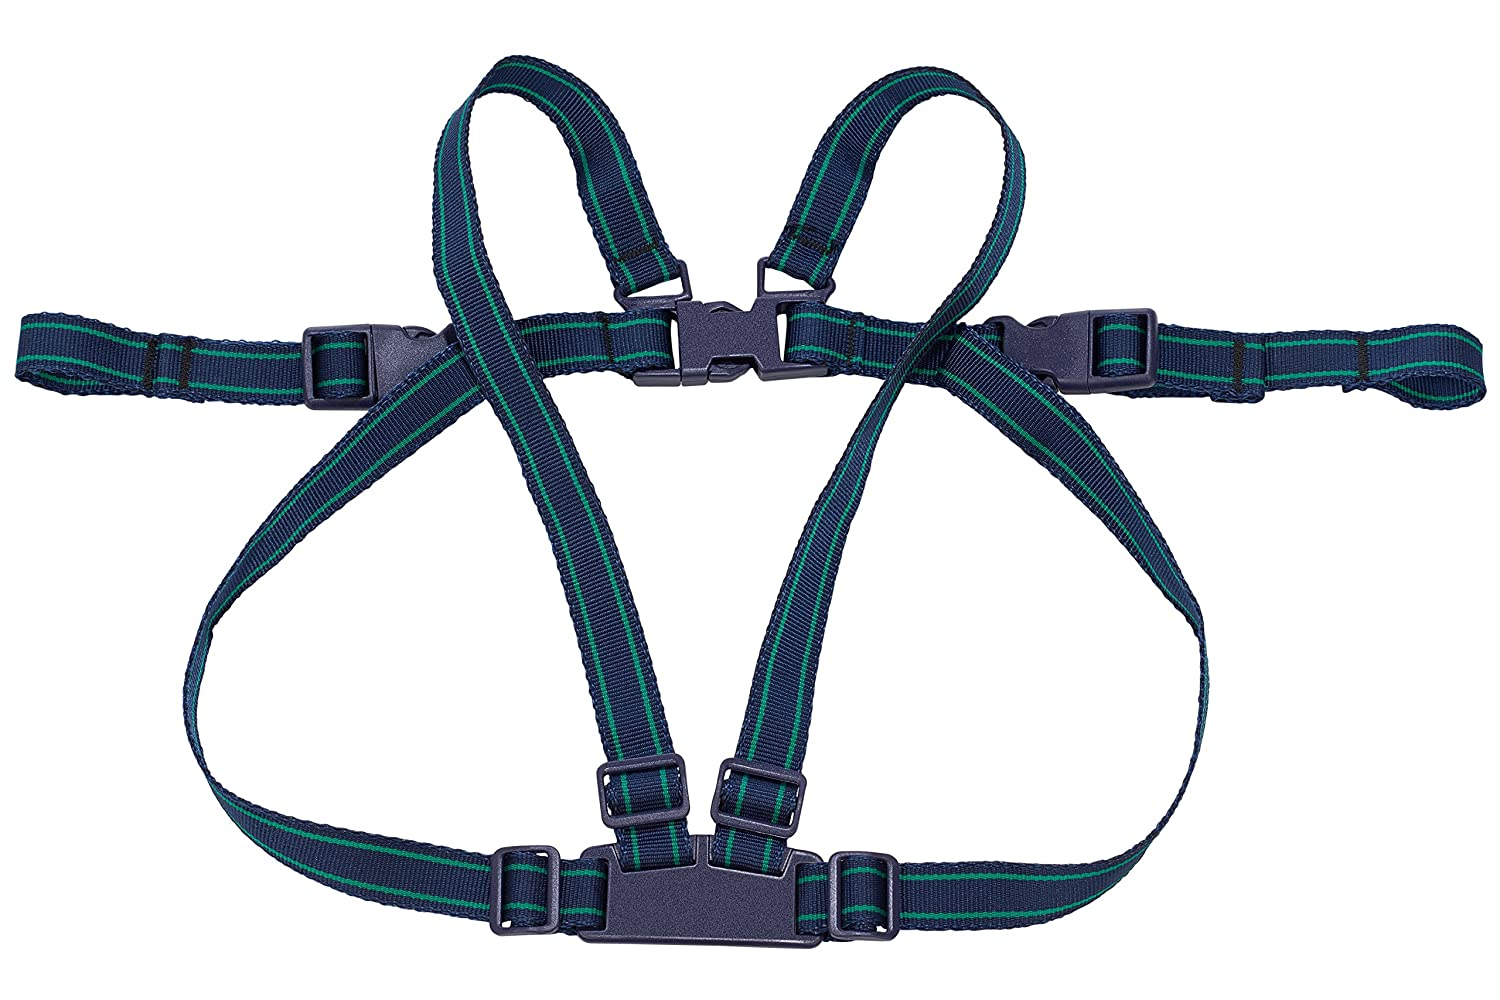 Safety 1st Safety Harness, Blue 38032760